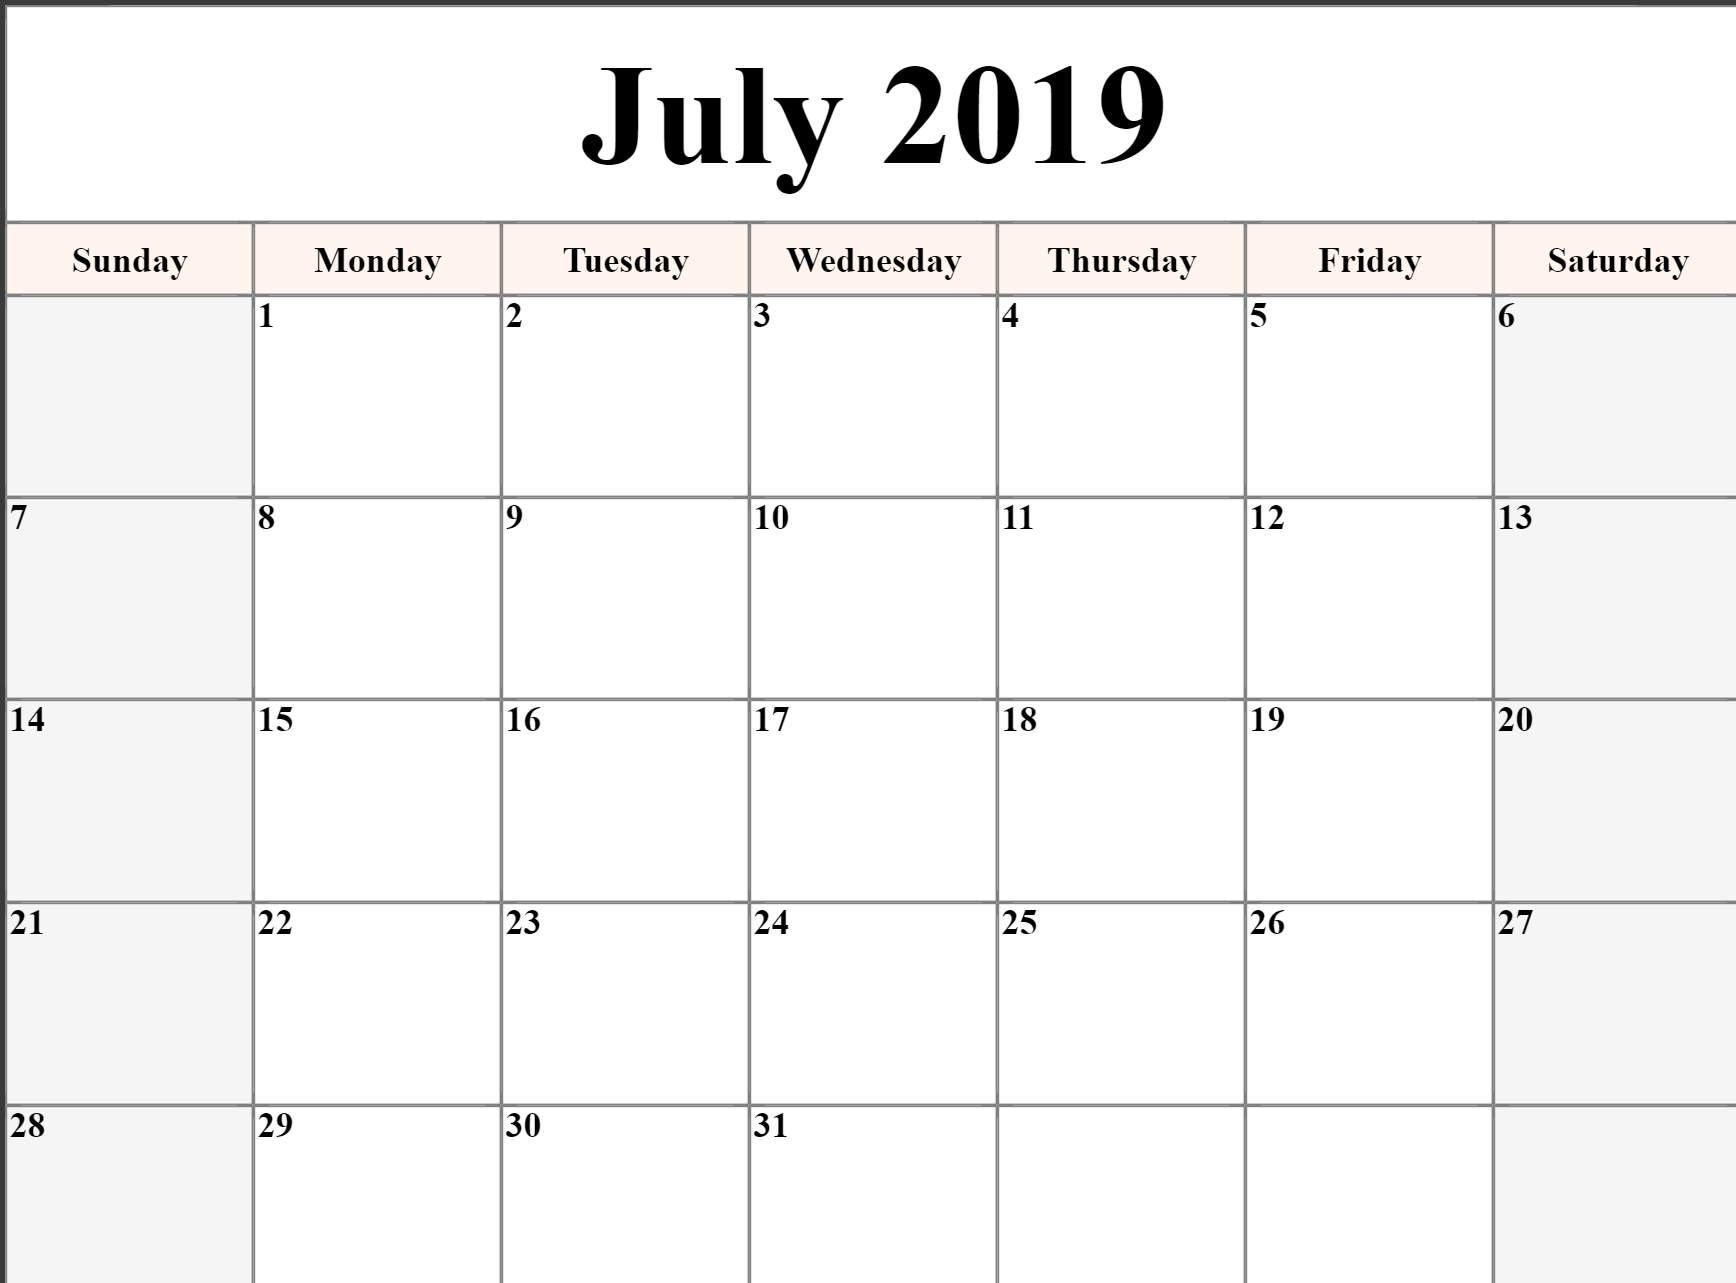 Monthly Calendar July 2019 Printable • Printable Blank Calendar Template